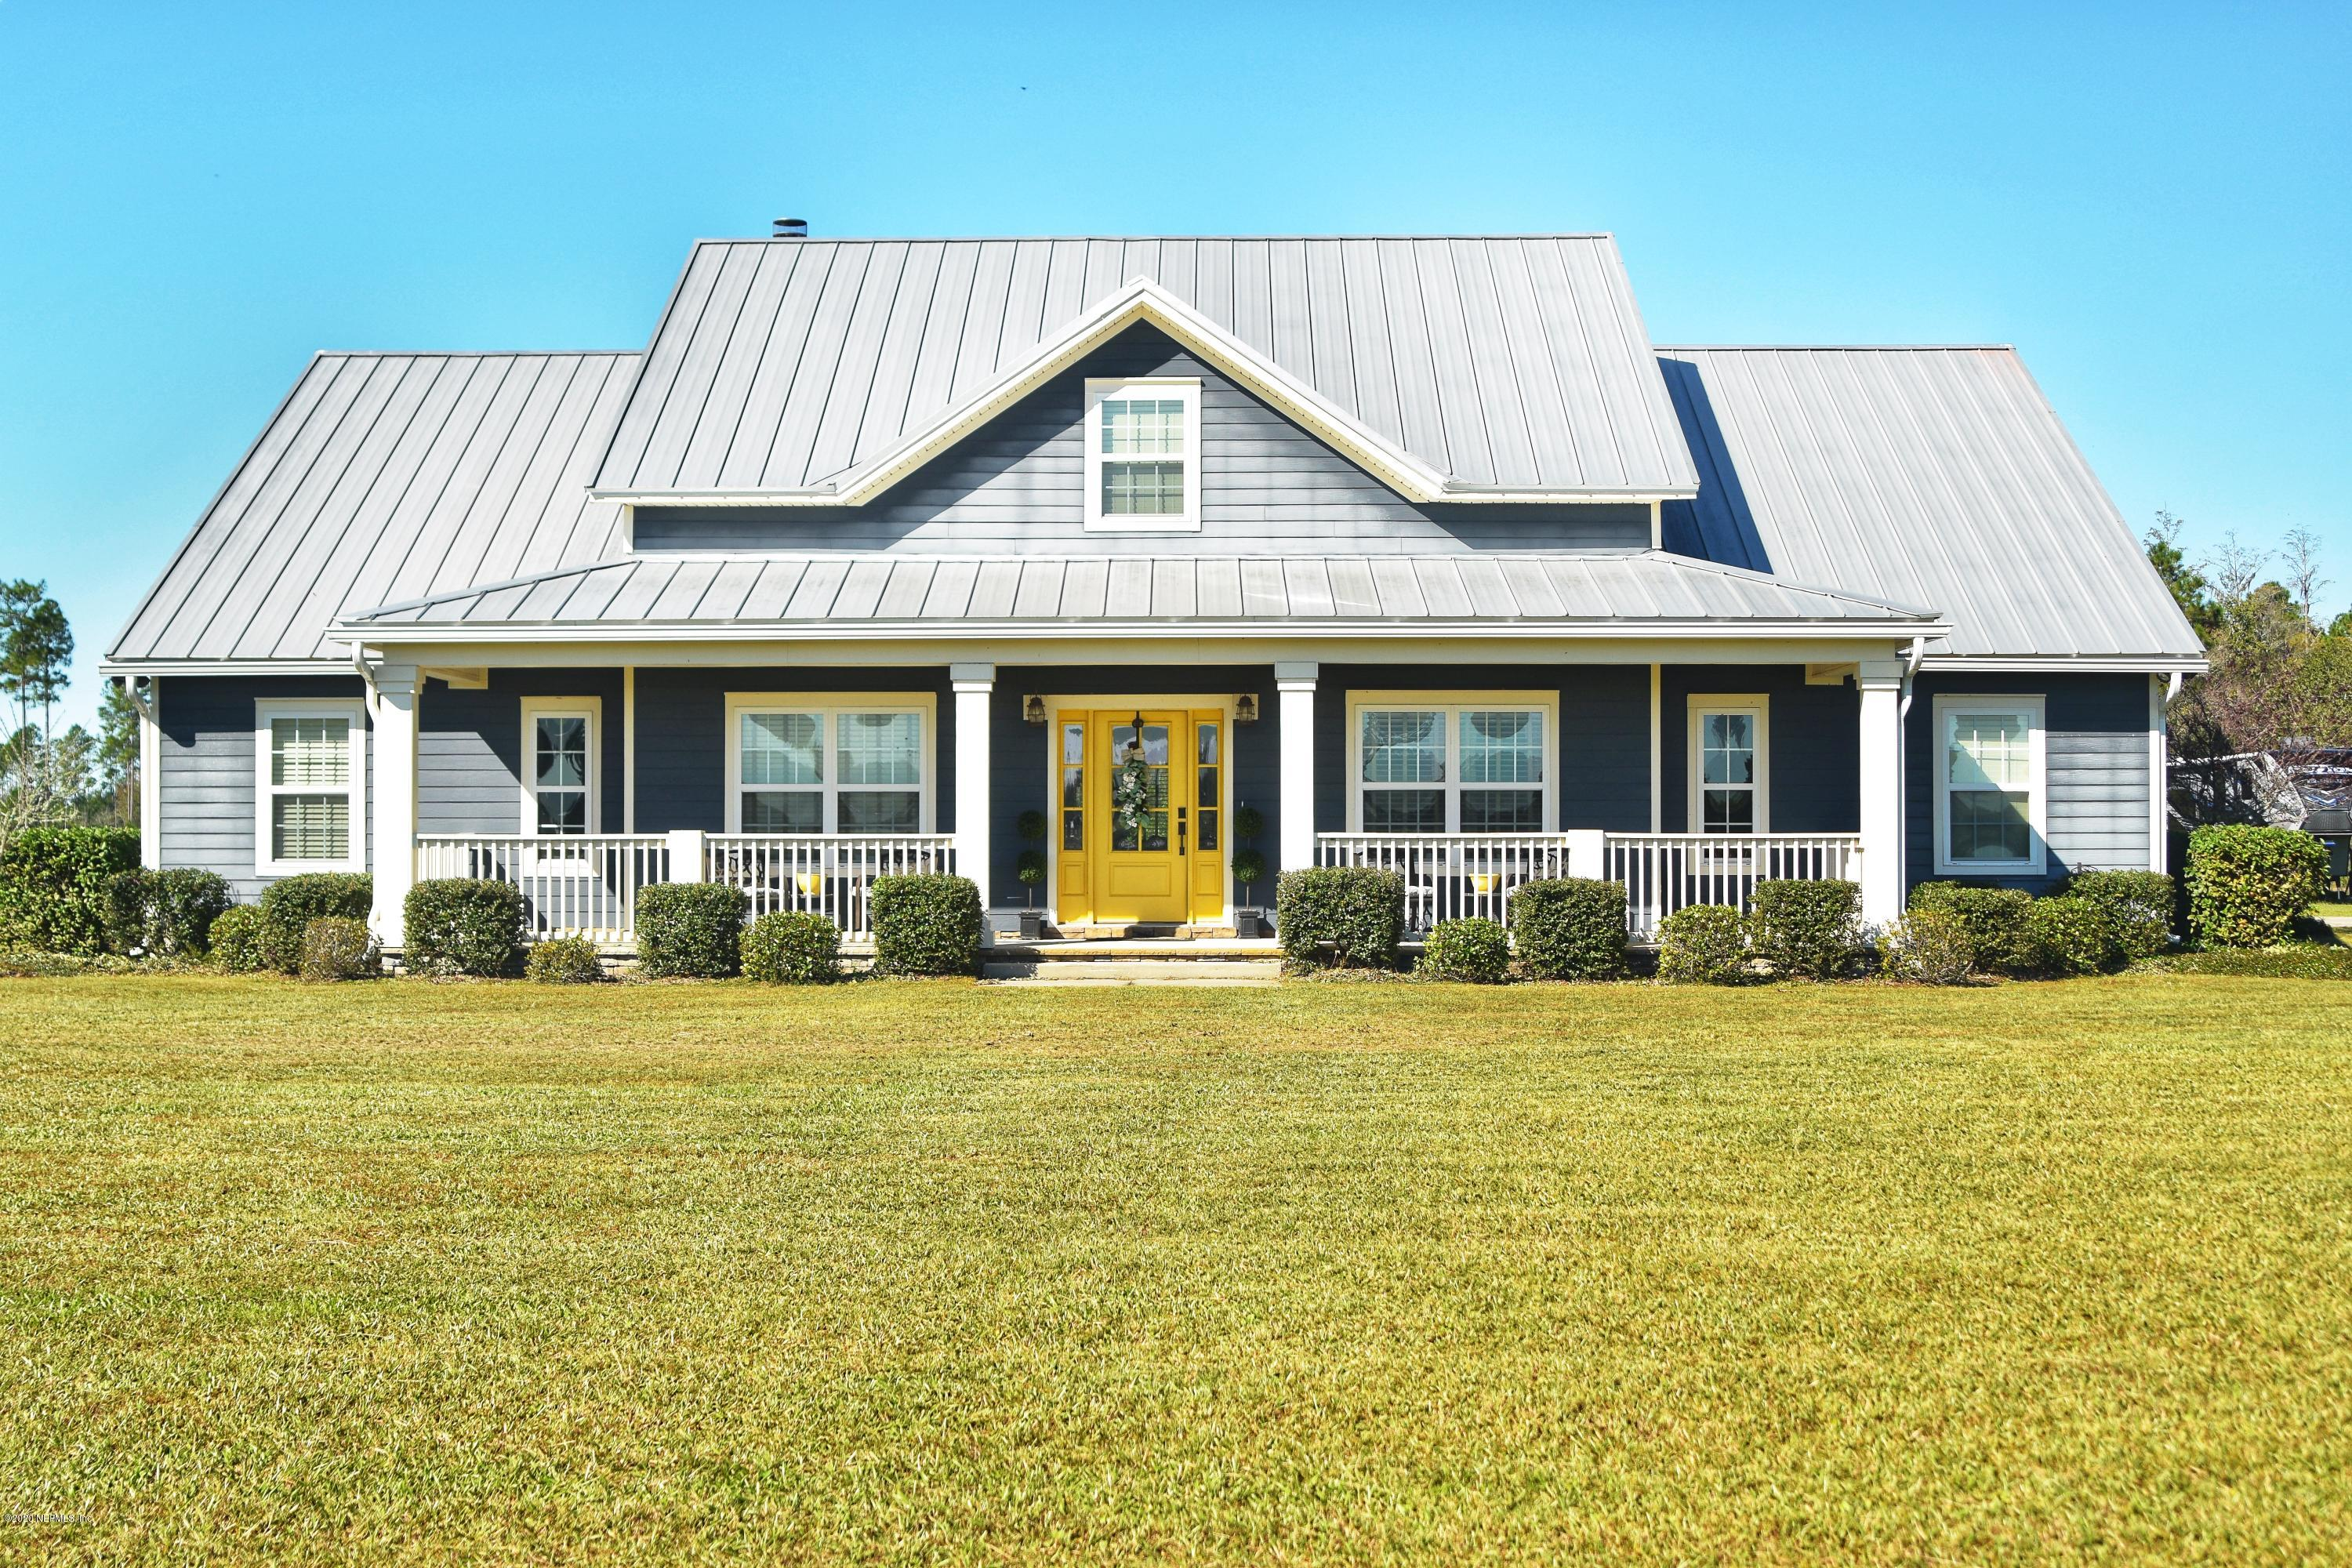 10209 WILLIAMS, GLEN ST. MARY, FLORIDA 32040, 4 Bedrooms Bedrooms, ,2 BathroomsBathrooms,Residential,For sale,WILLIAMS,1081789